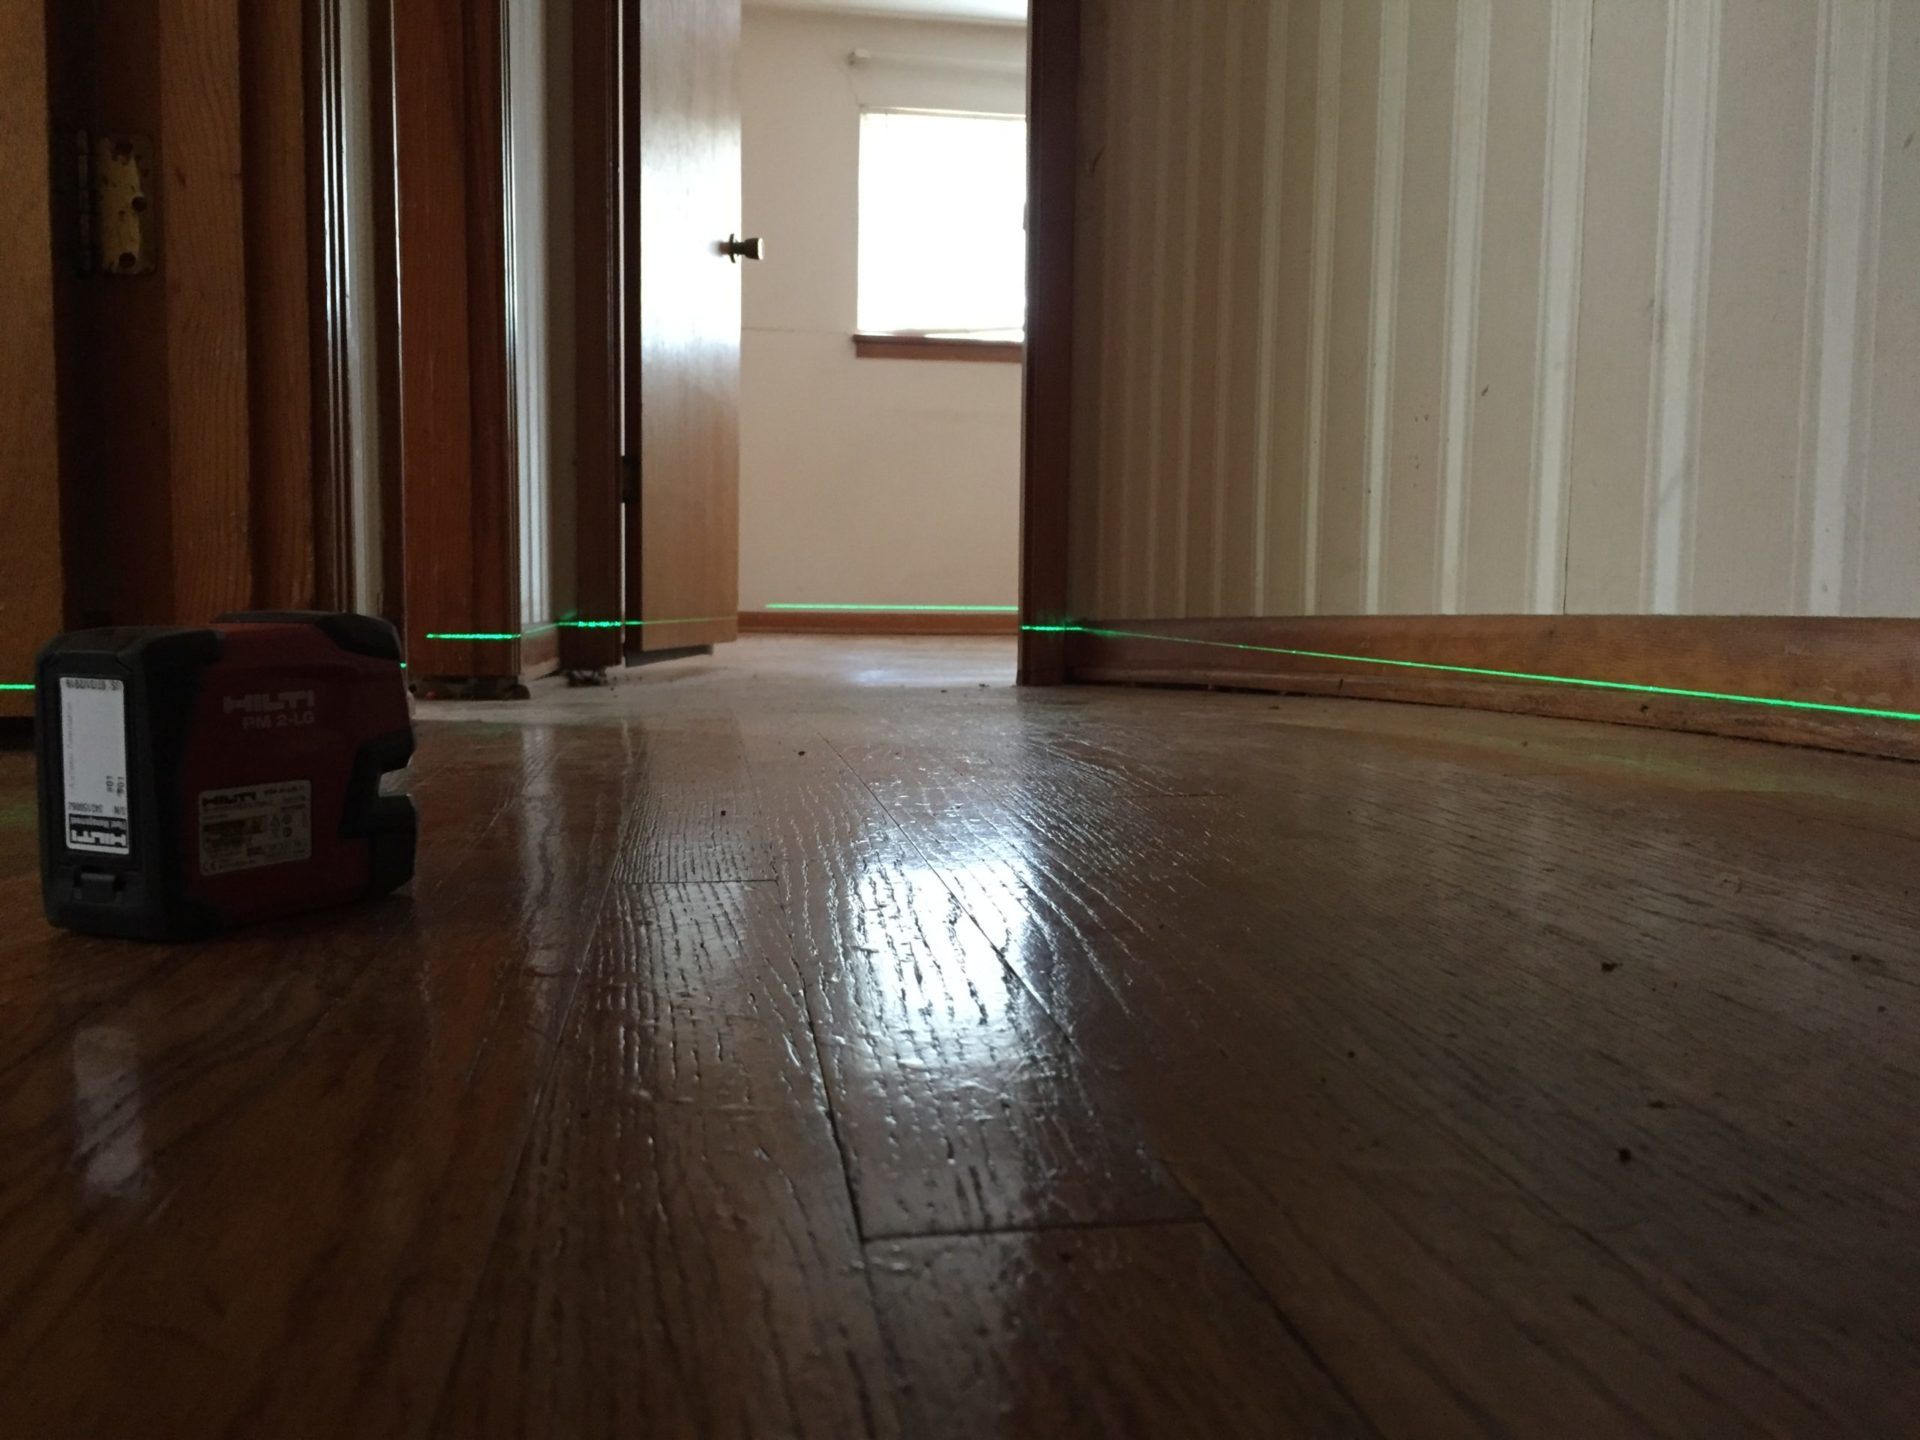 uneven floors with laser level